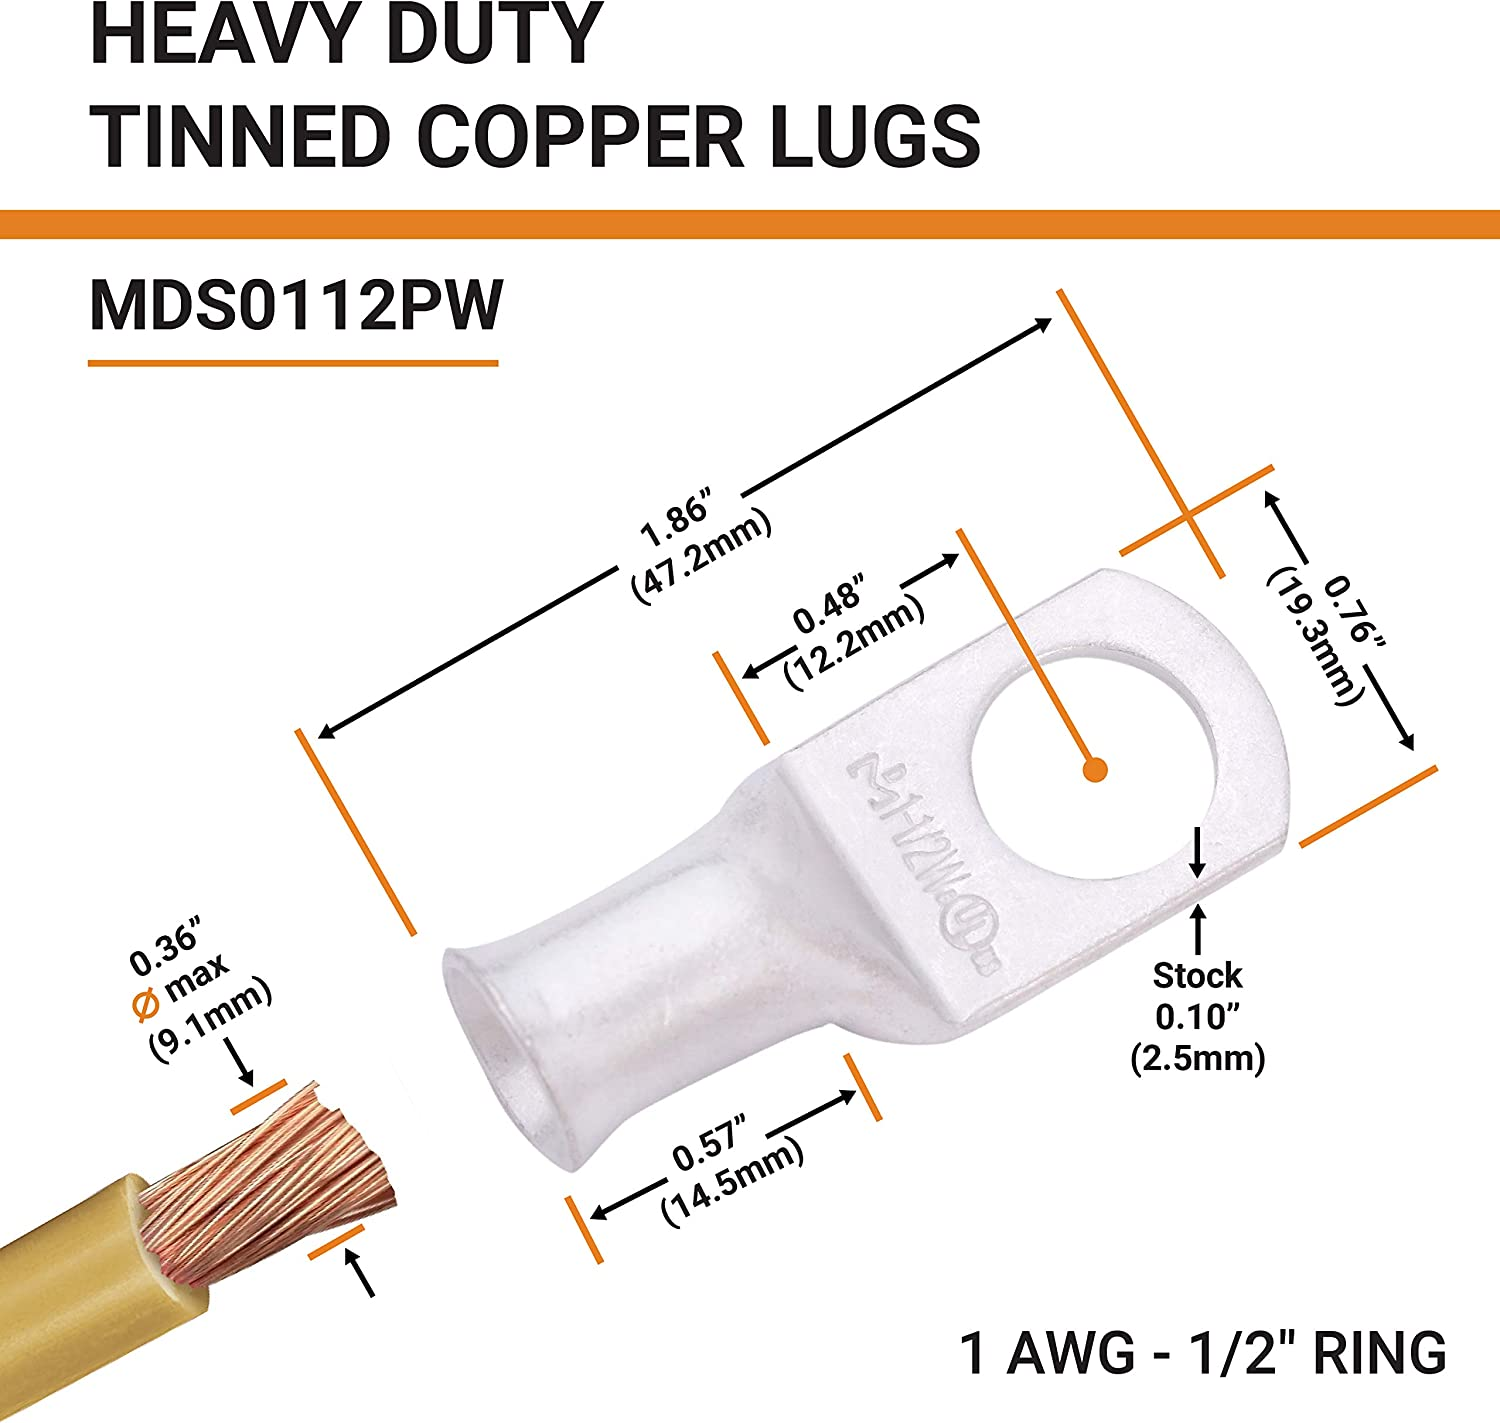 8 AWG - 4//0 AWG SELTERM UL Tinned Copper Wire Lugs Battery Cable Ends /— Marine Grade Heavy Duty